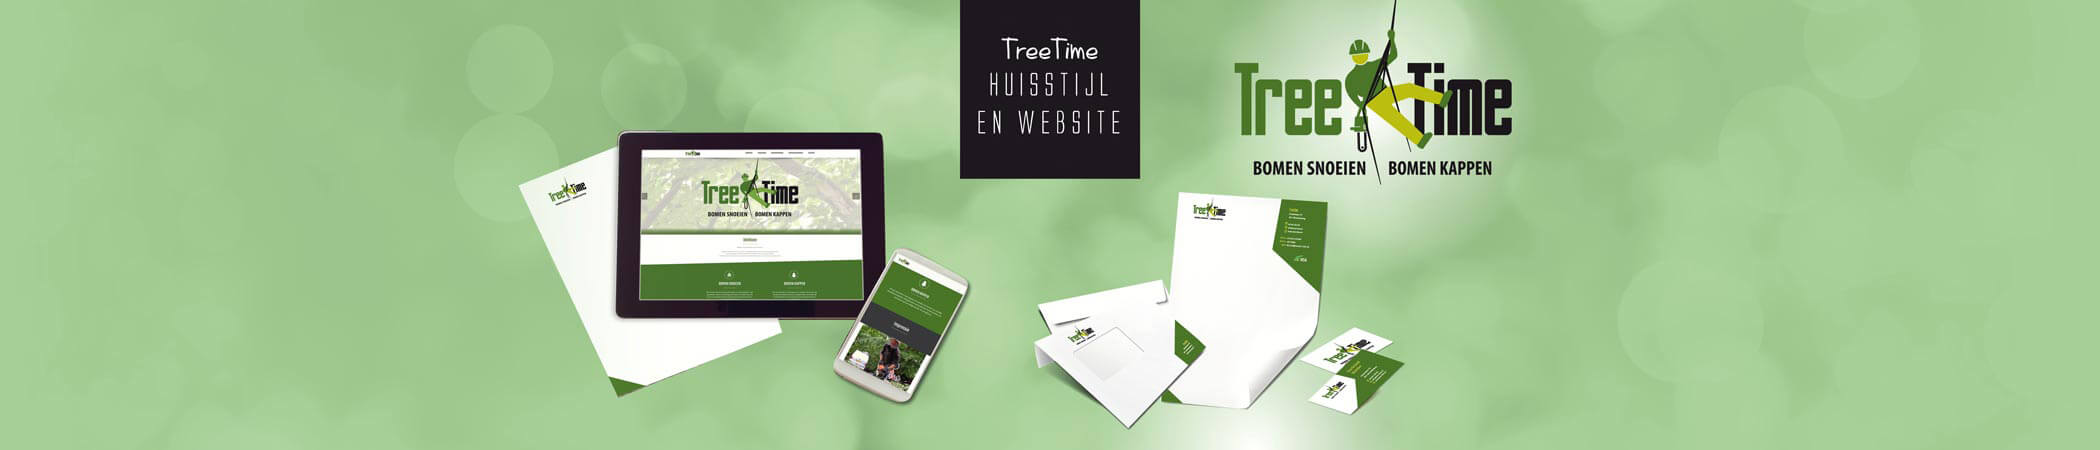 Tree Time huistijle en website